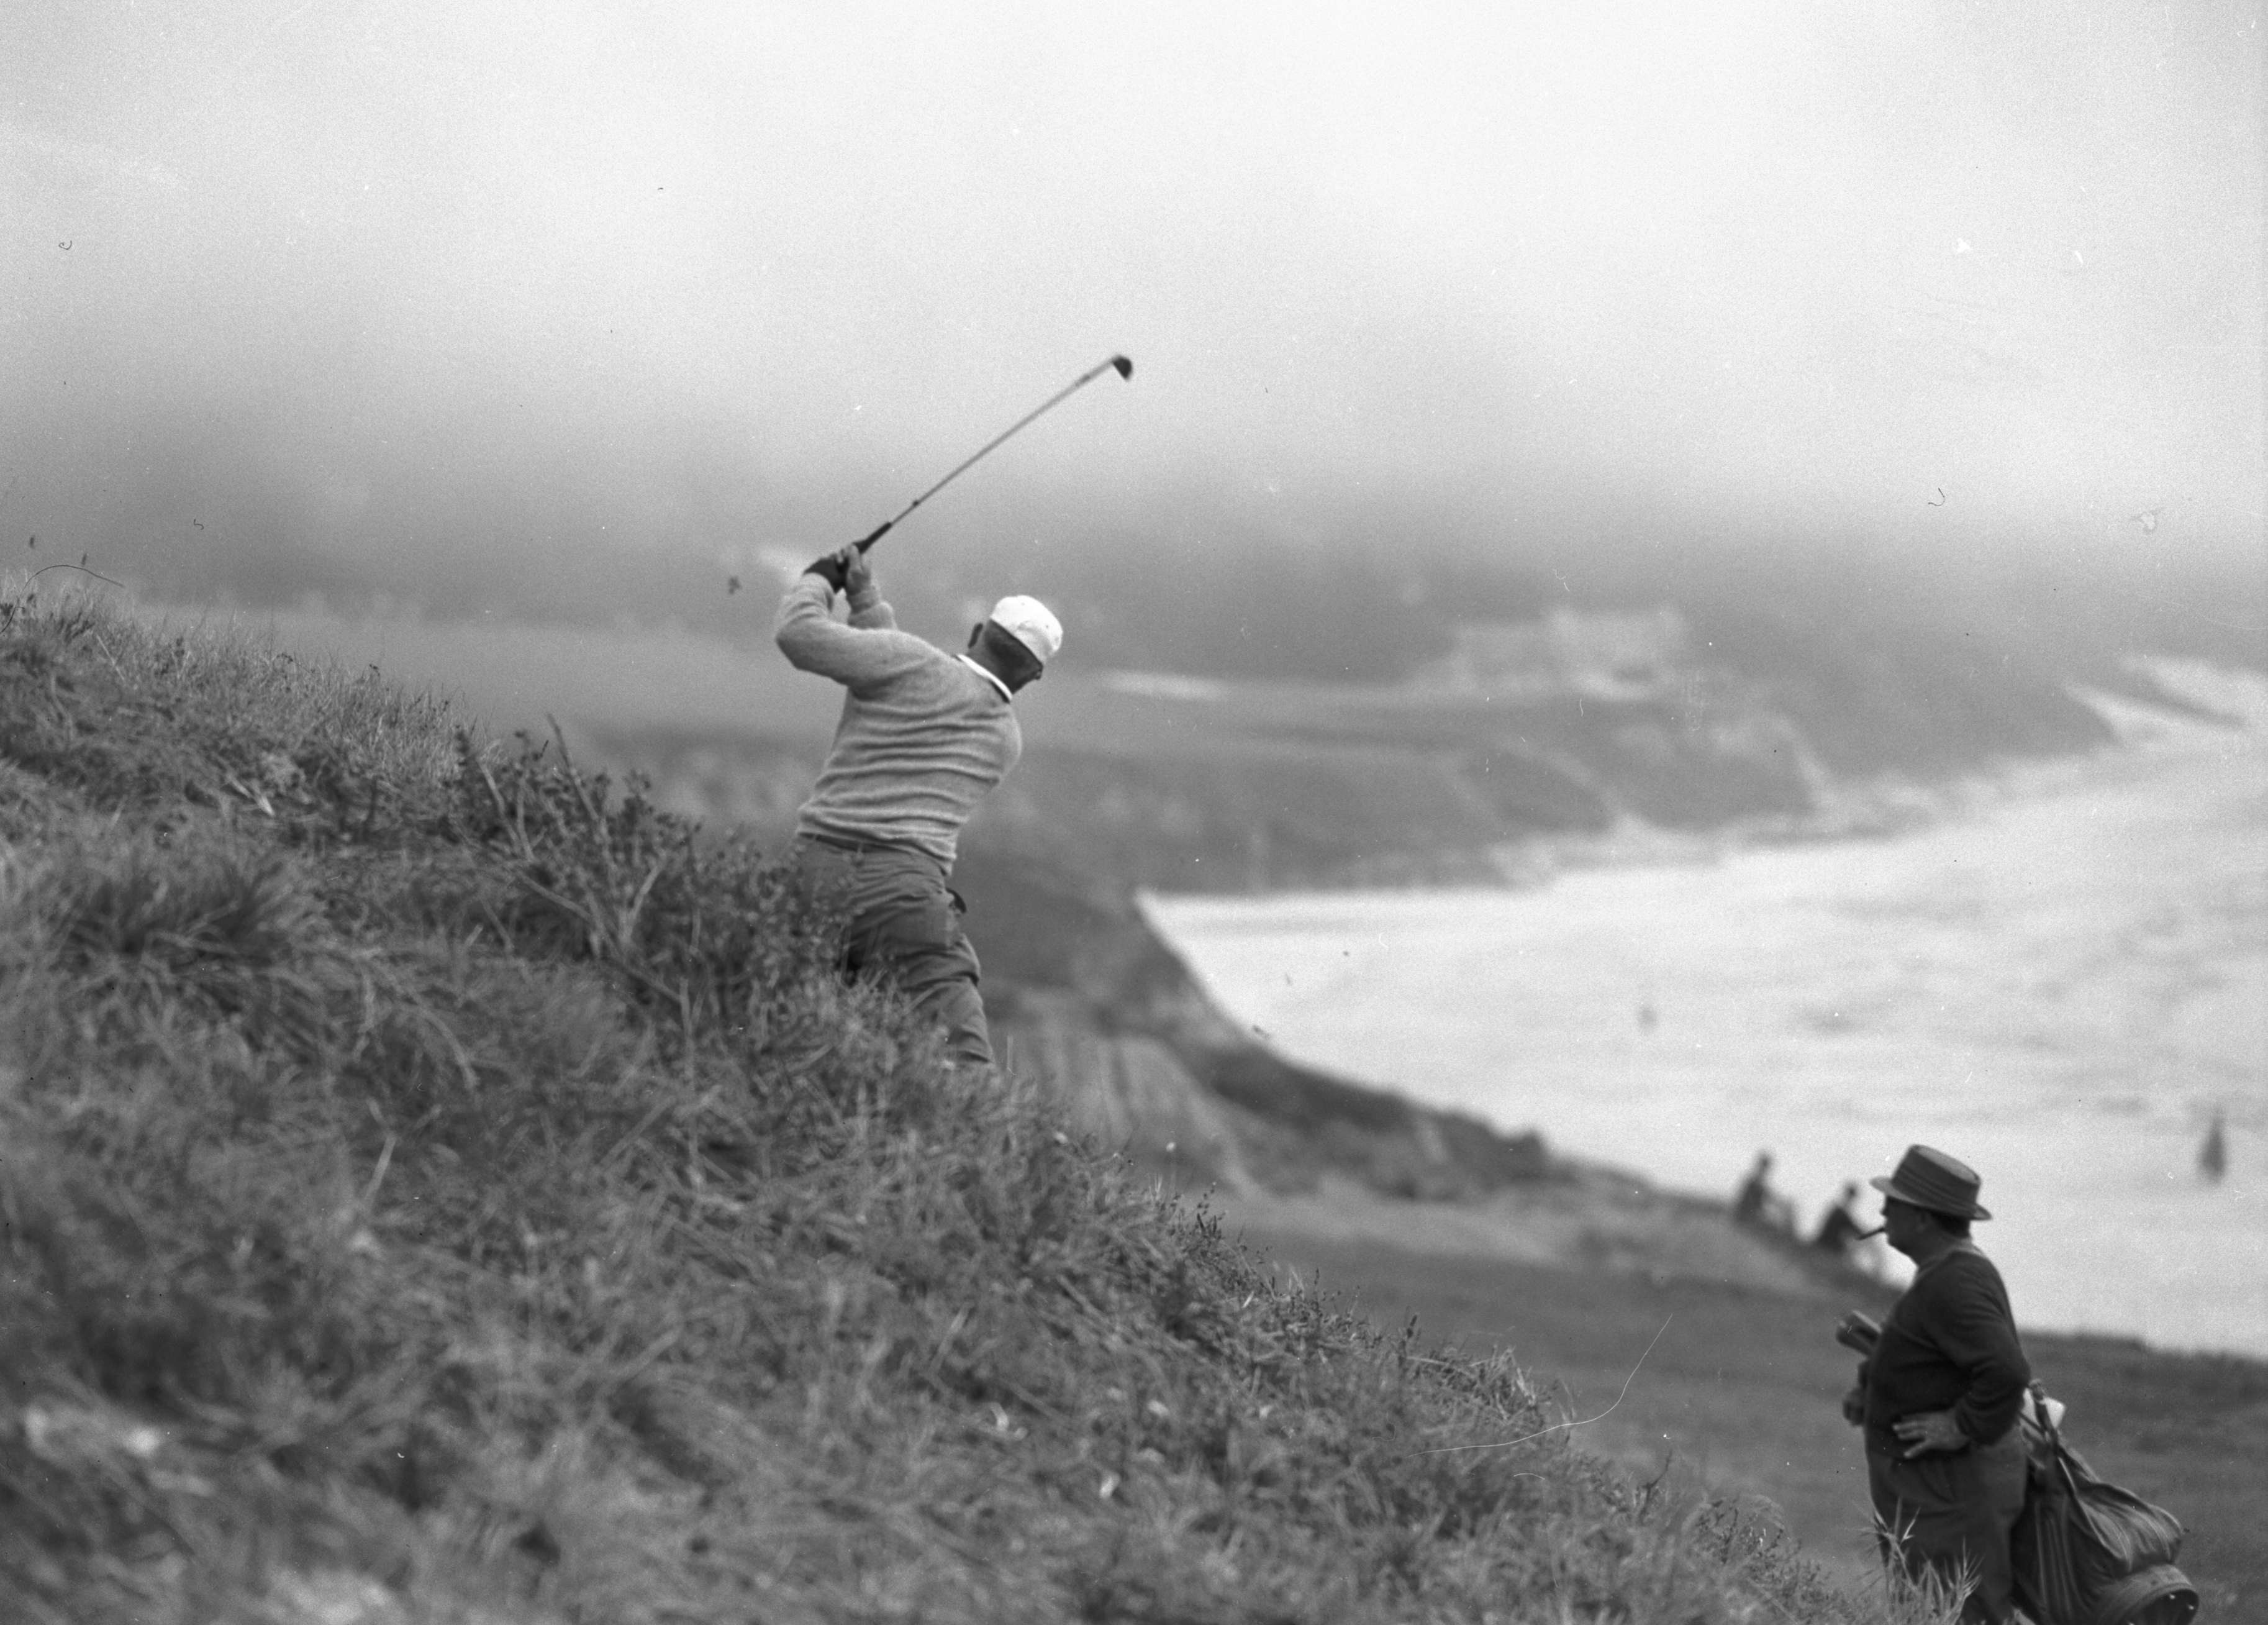 Nicklaus Pebble Beach 1961 U.S. Amateur